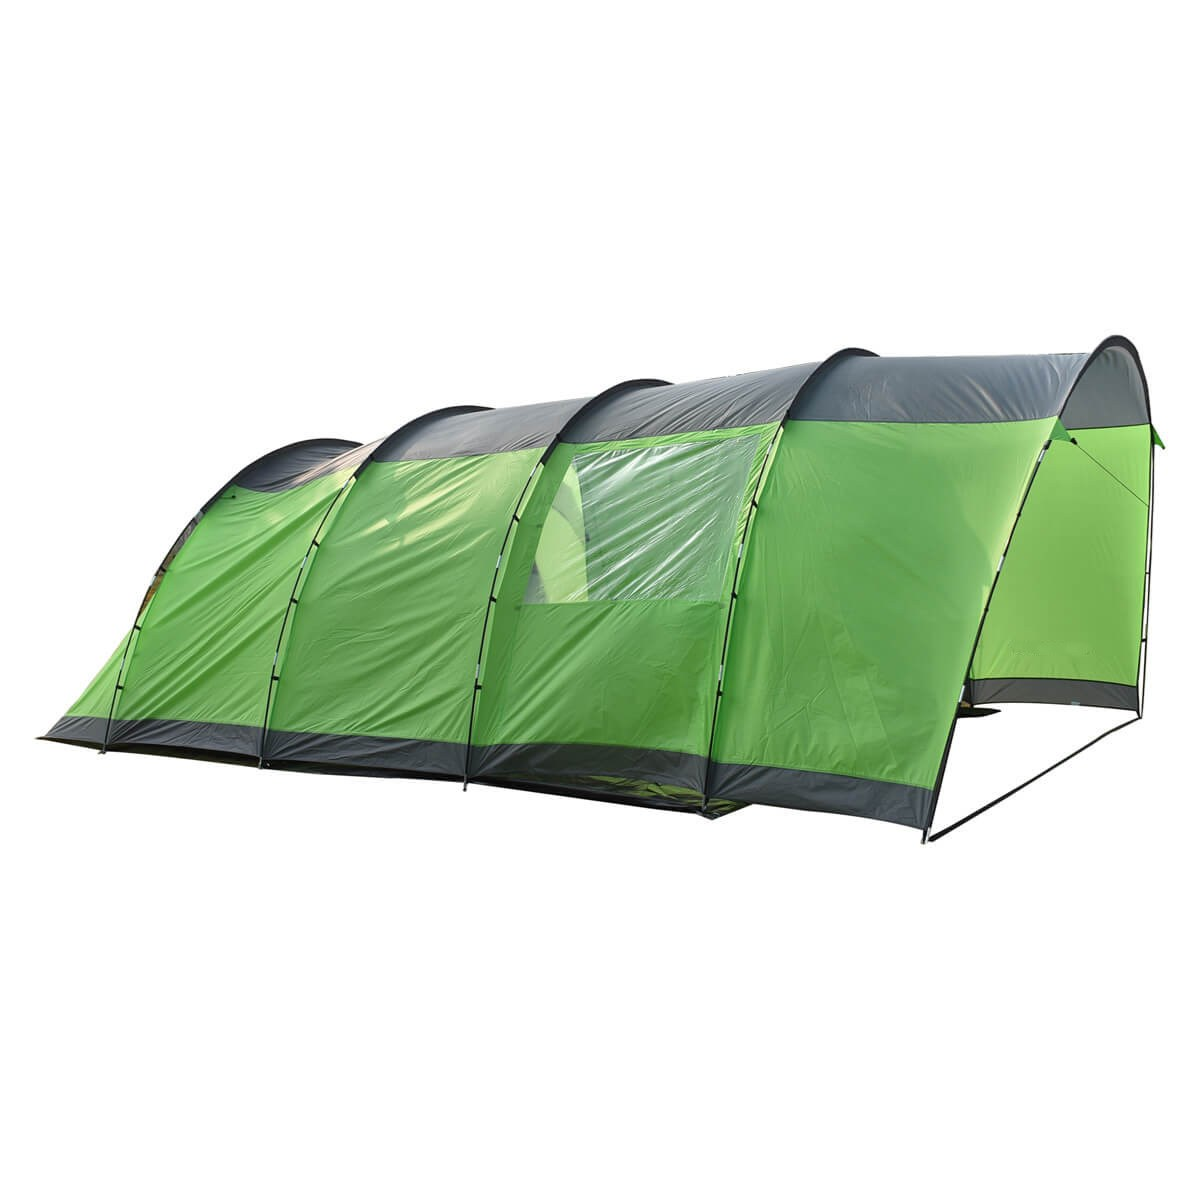 6 Berth Family Tunnel Tent